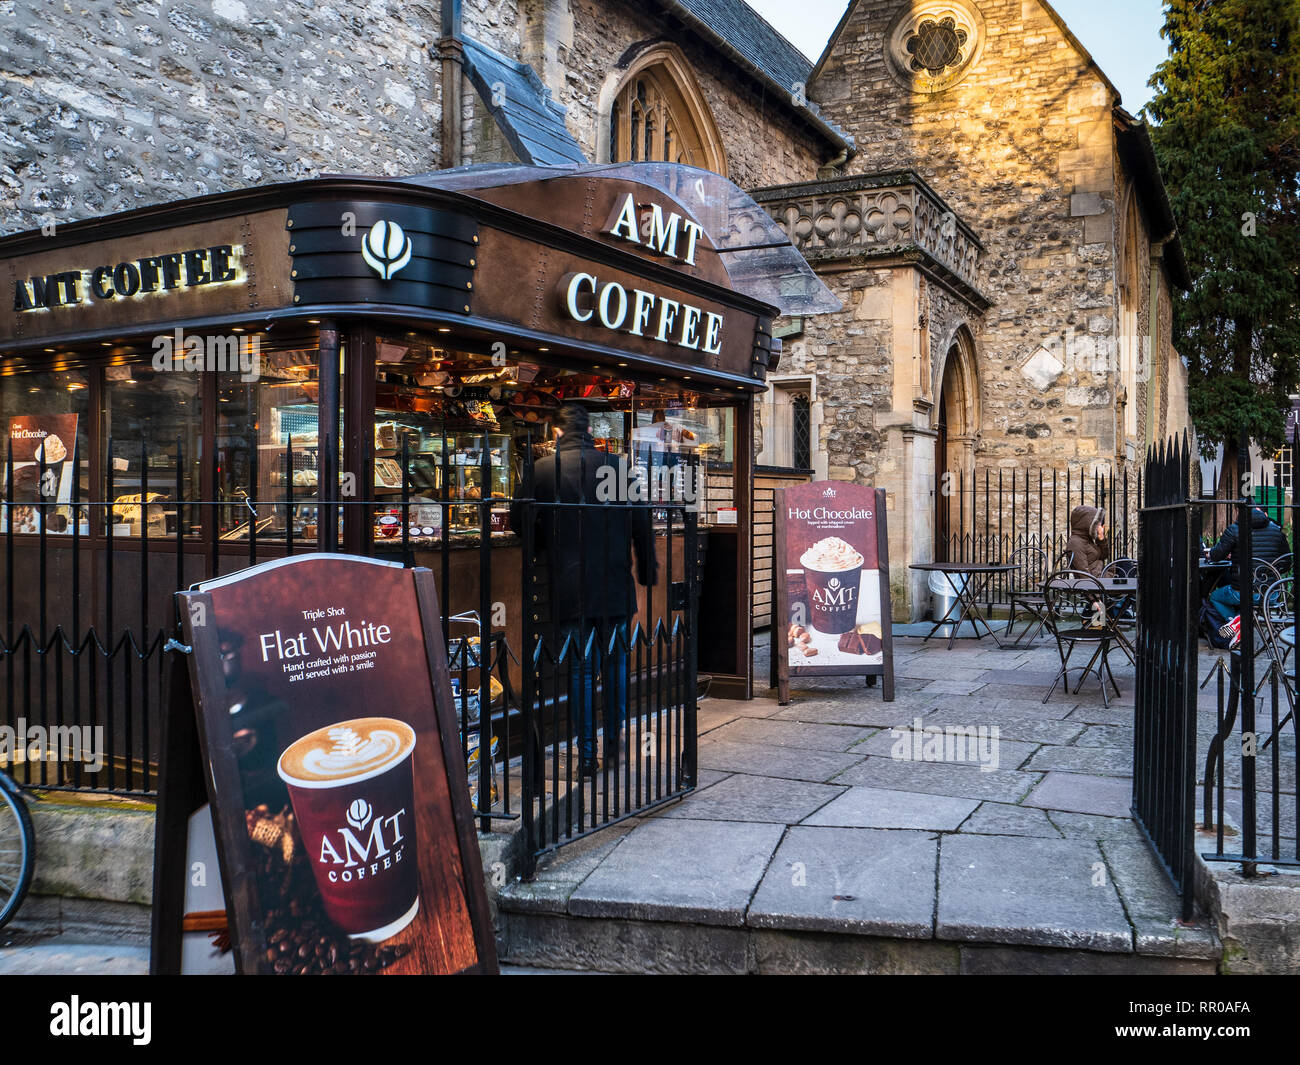 AMT Coffee booth in central Oxford UK. AMT Coffee is a UK chain of coffeehouses mainly located in railway stations. - Stock Image